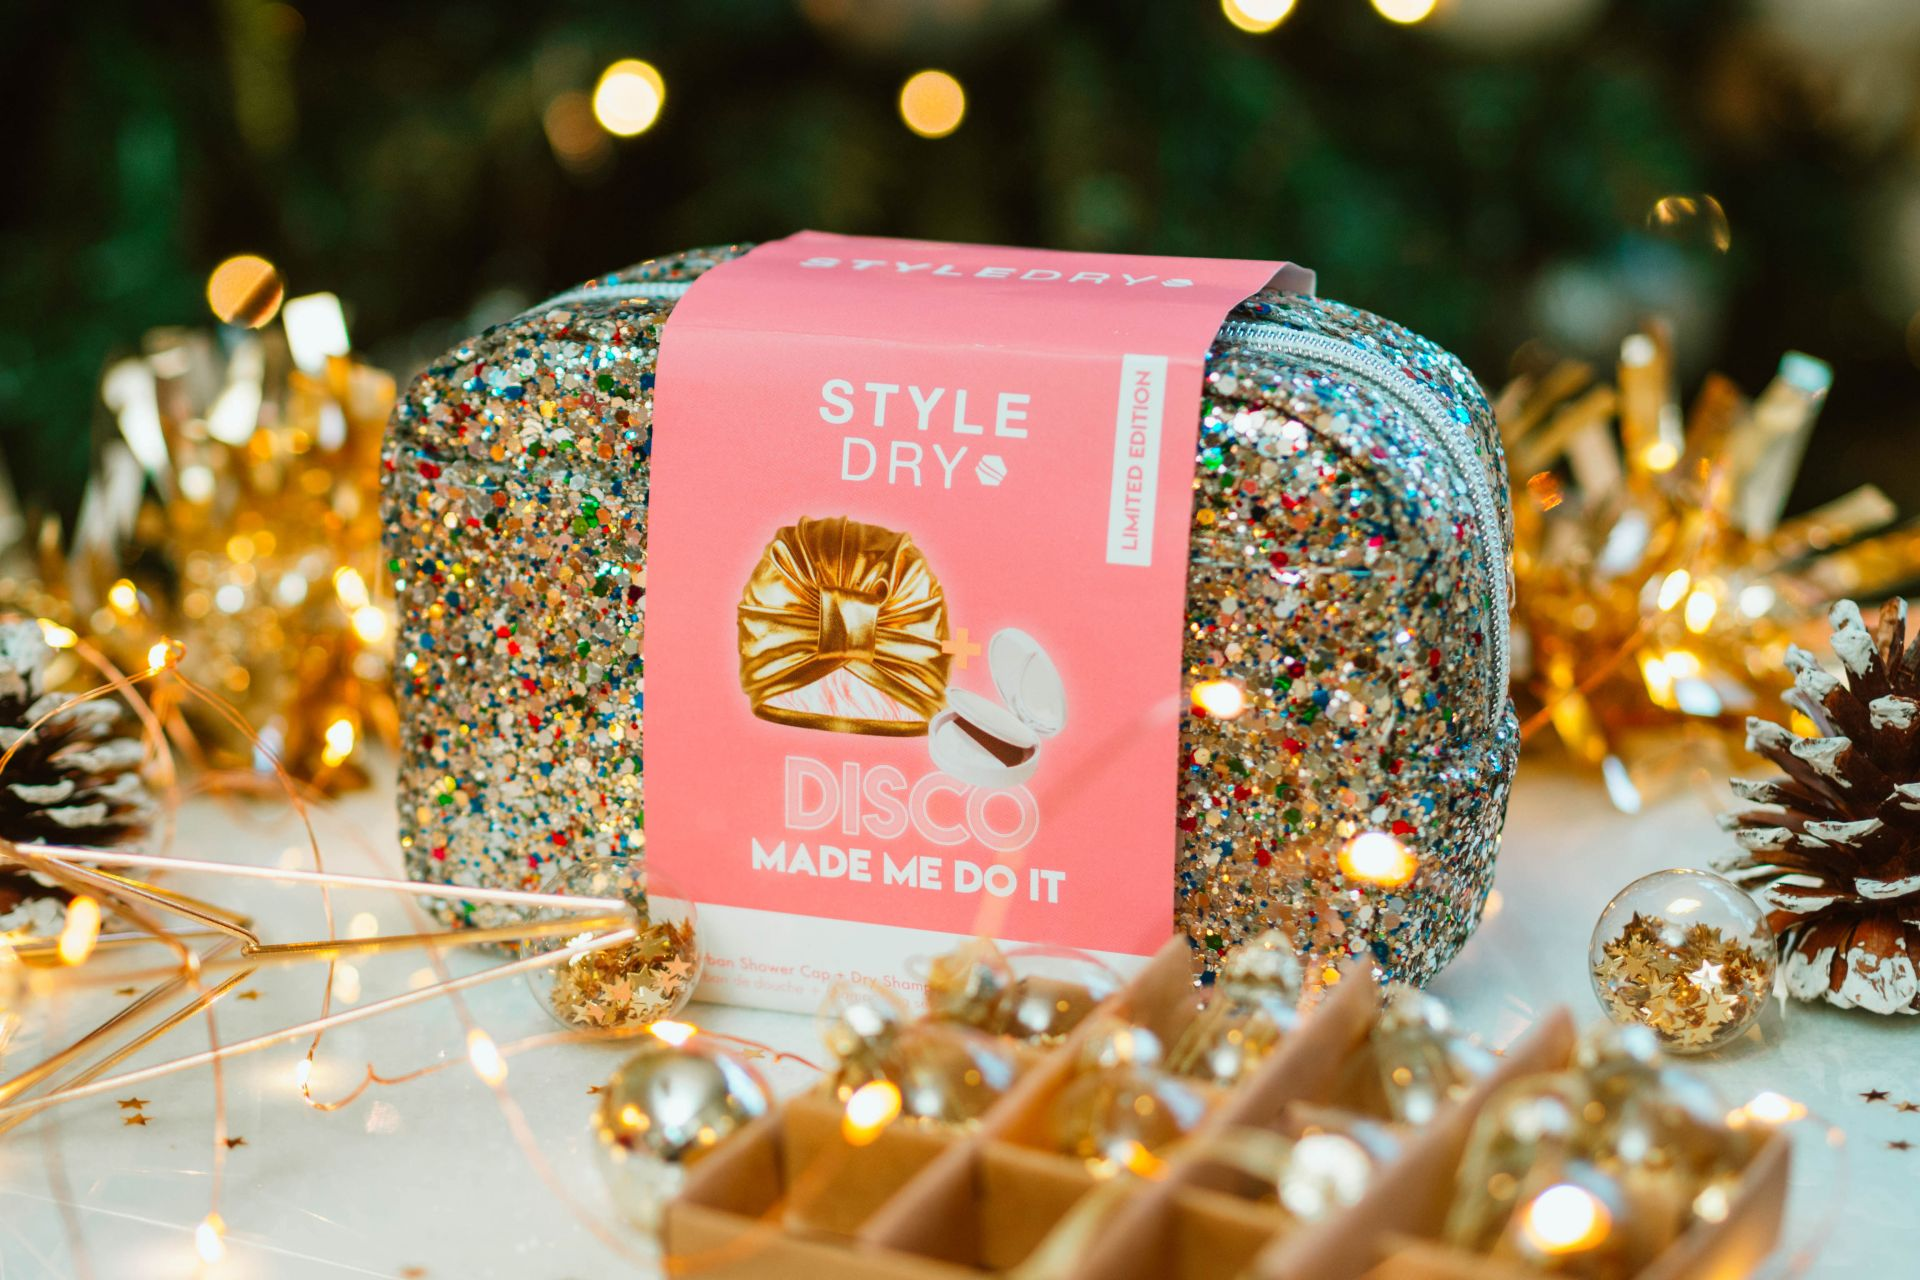 Styledry Disco Made Me Do It Set - last minute Christmas gifts sorted